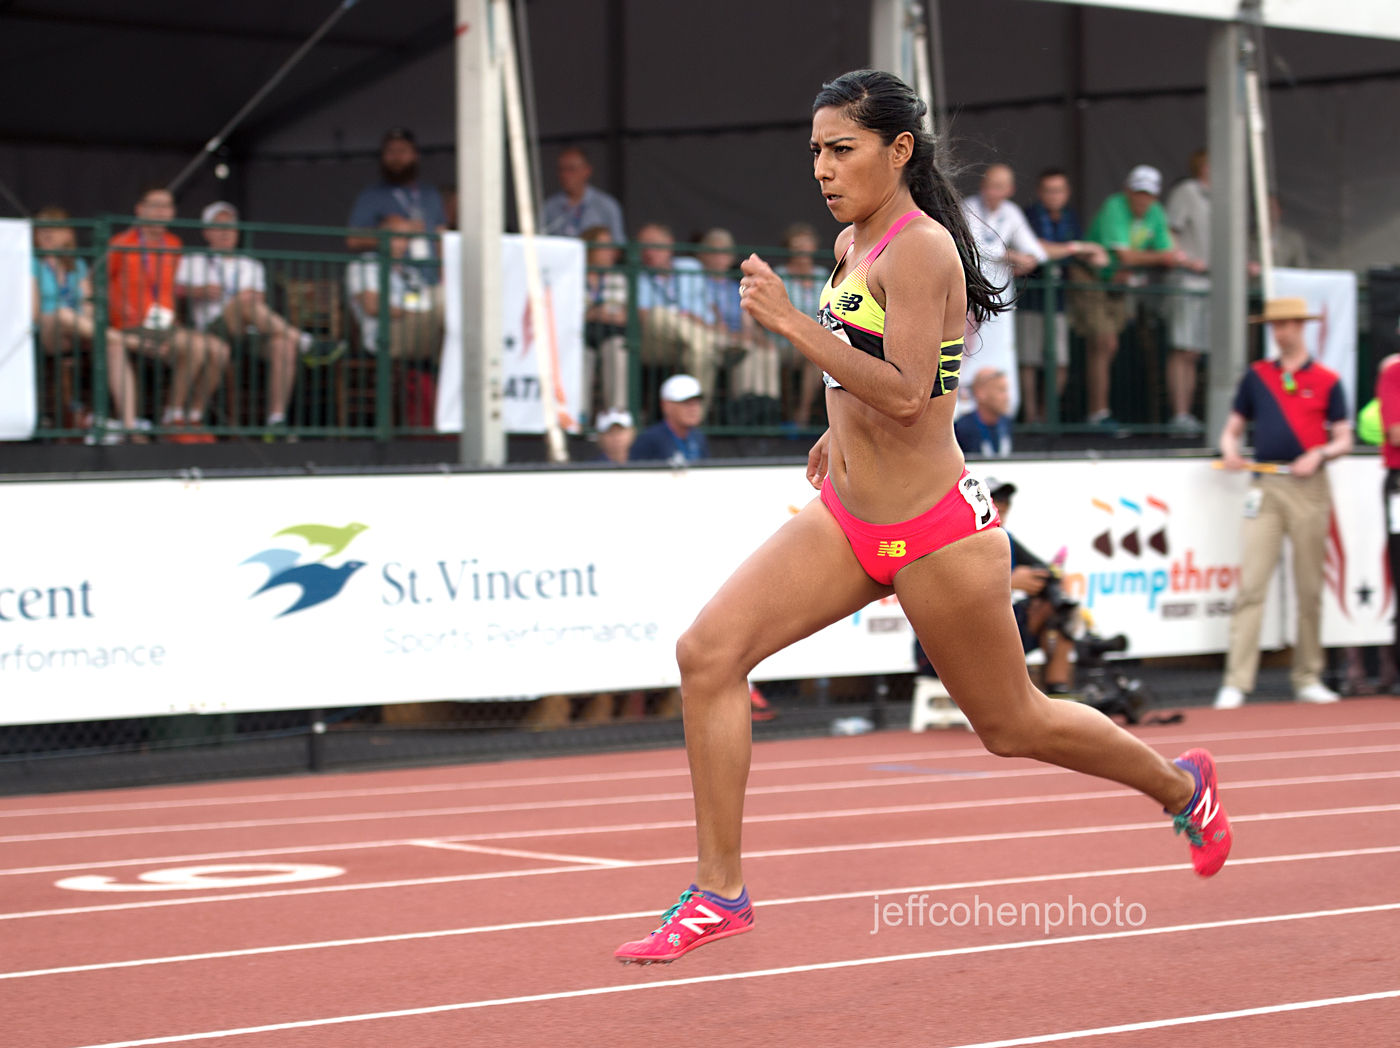 1r2015_usaoutdoors_b_martinez_800mw__jeff_cohen3167_web.jpg